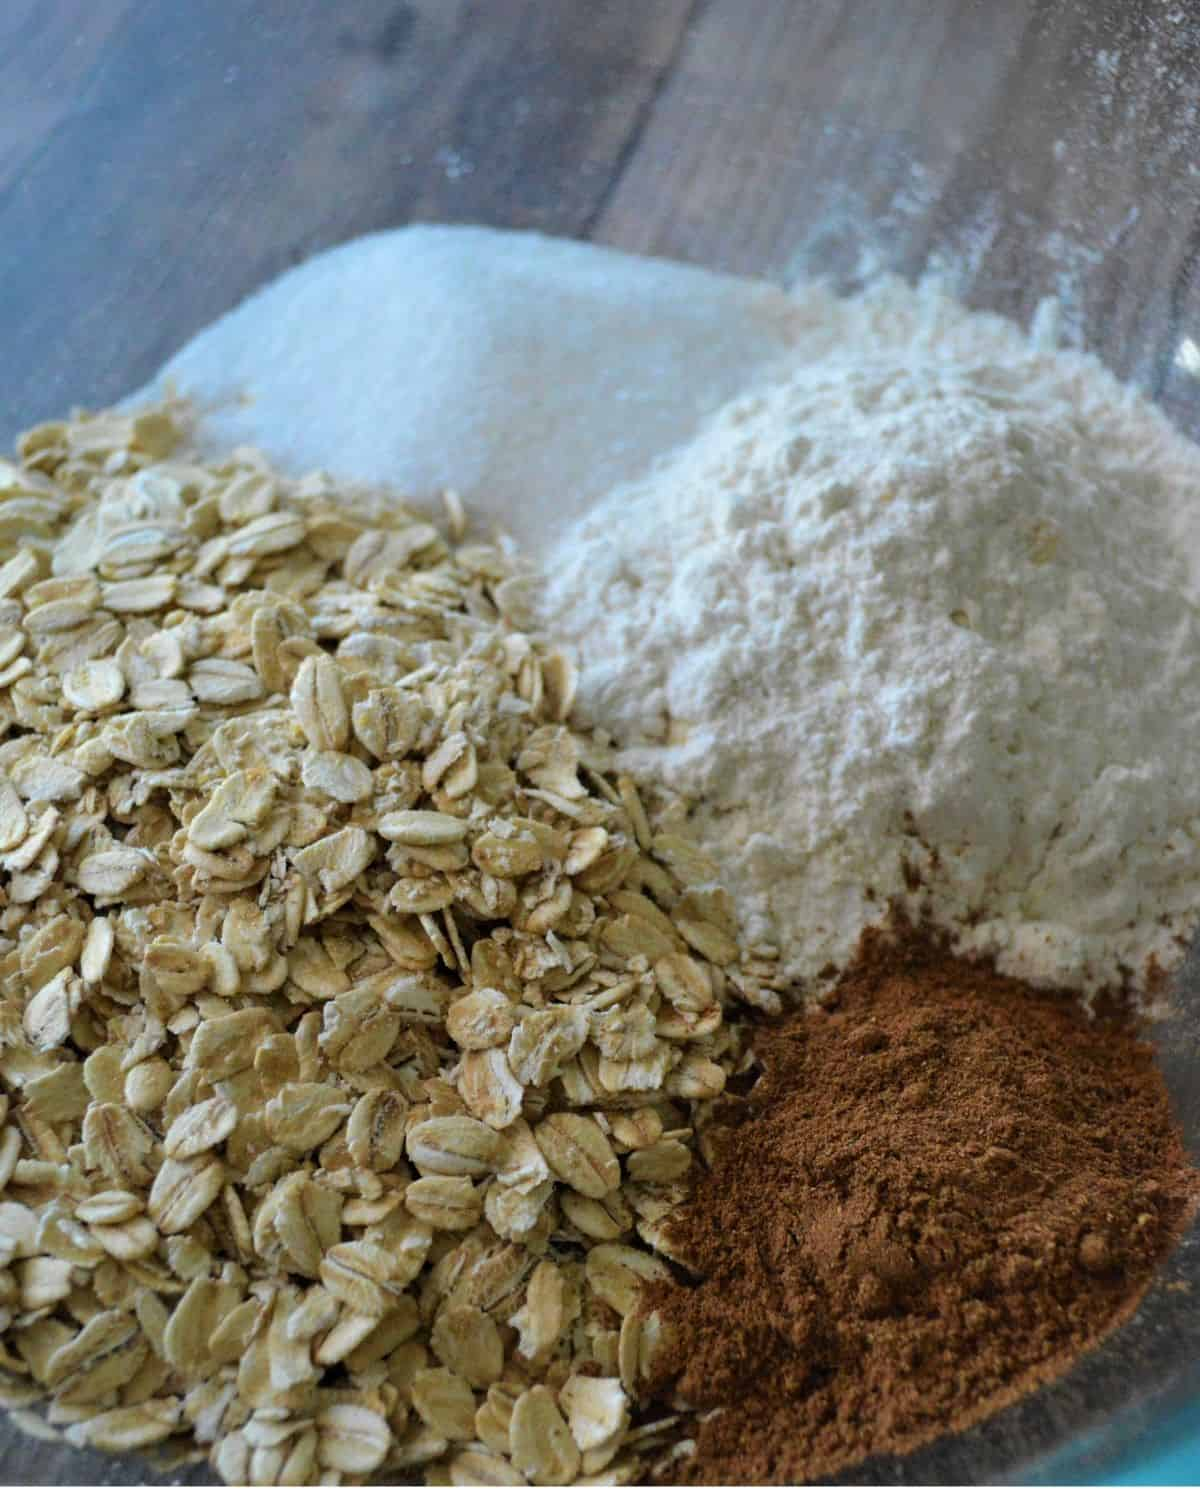 The dry ingredients of flour, oats, pumpkin pie spice, sugar, and salt to make oat bars.